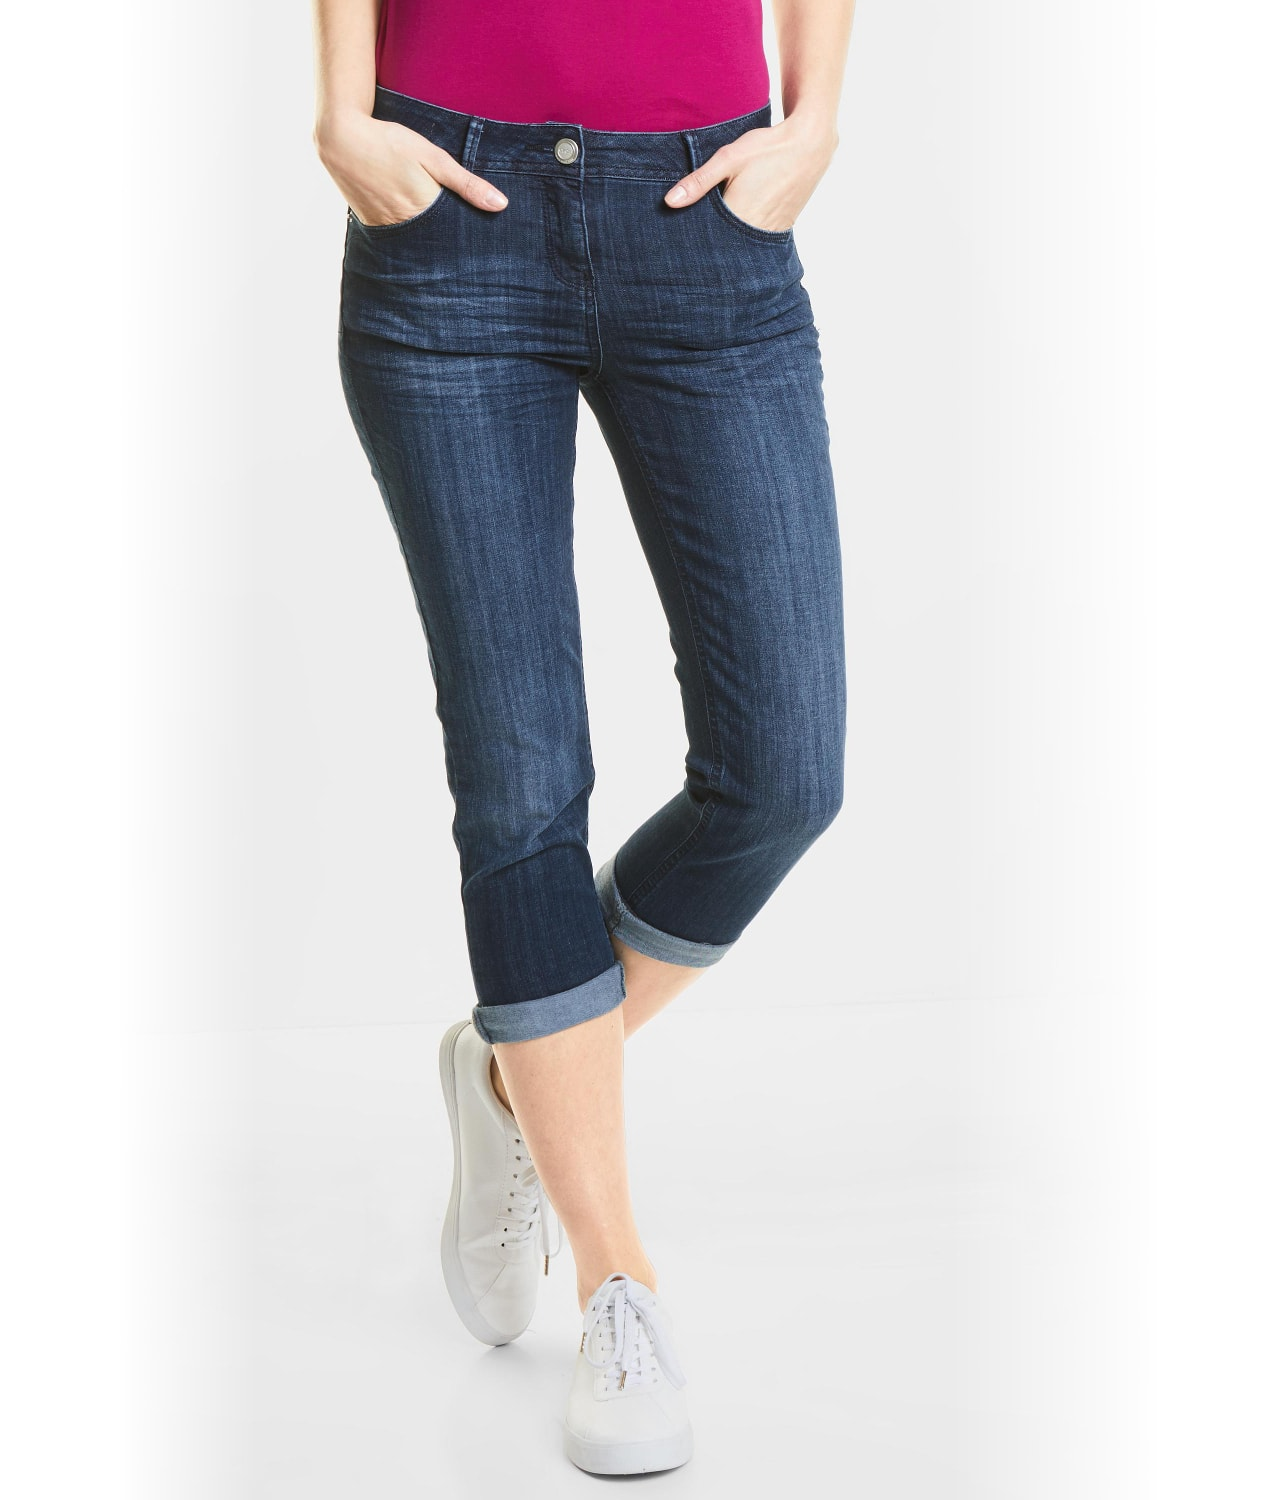 940aa74bd3219 CECIL Slim Fit 7/8 Jeans Toronto bei Peppys kaufen - Click and Reserve